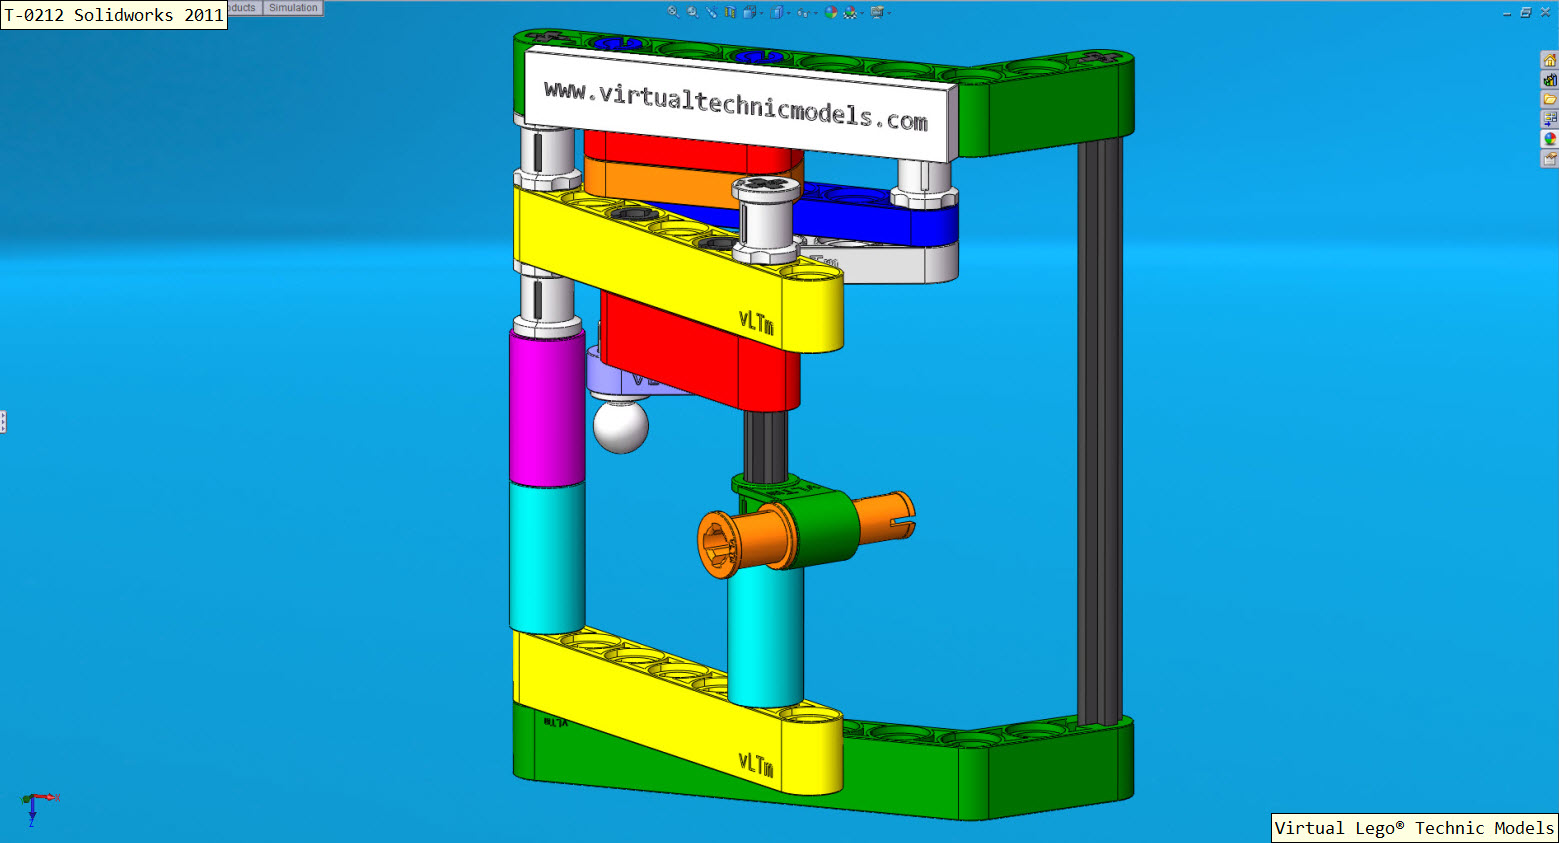 t-0212-03-solidworks_2011.jpg